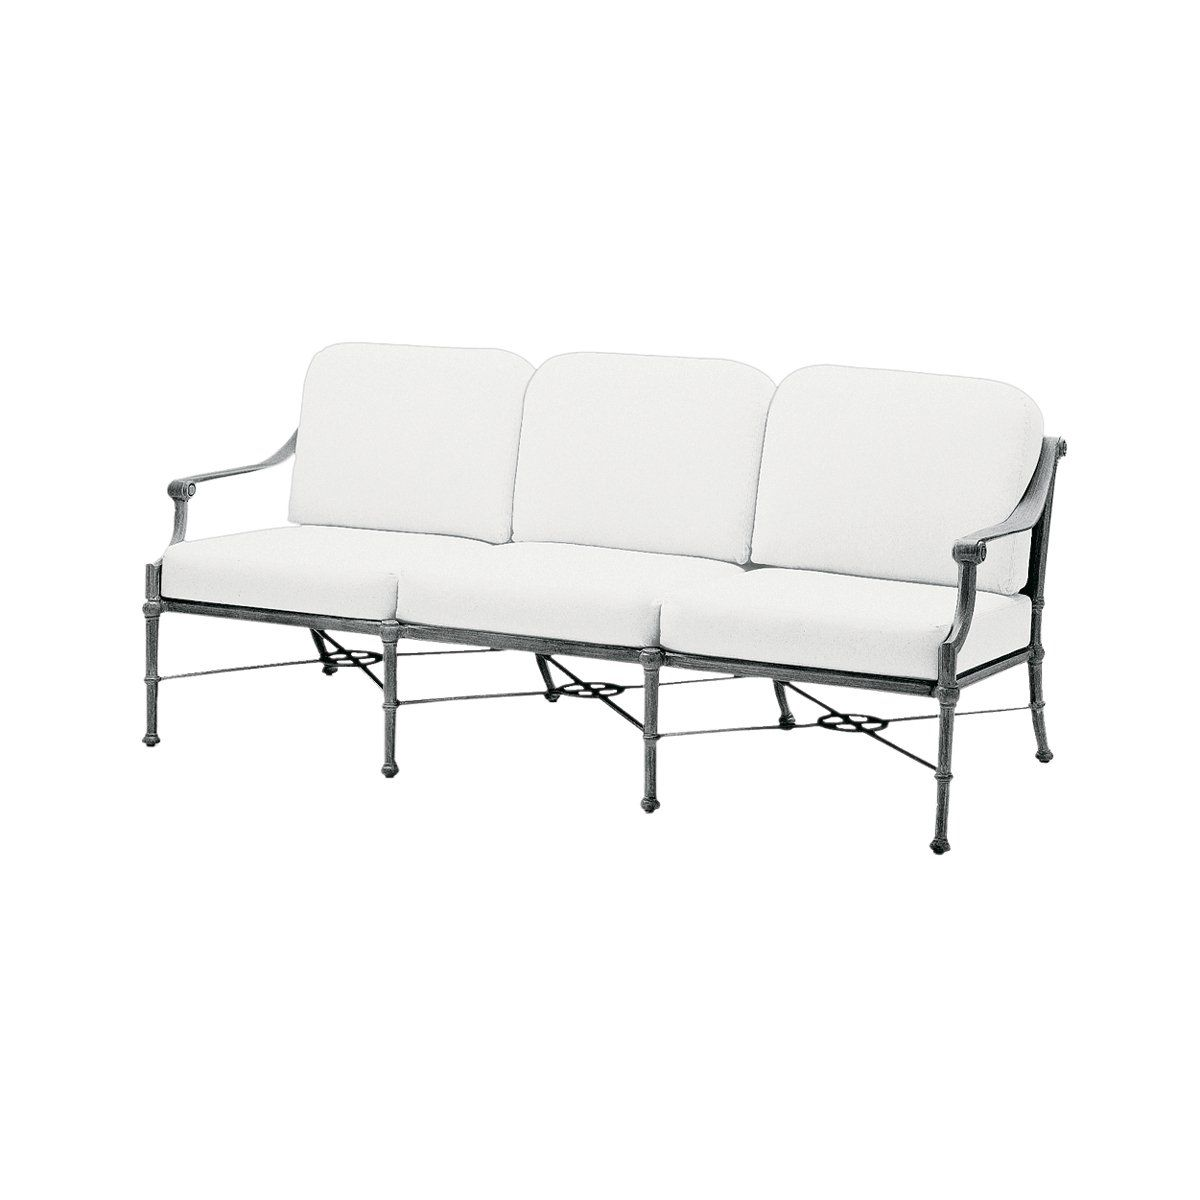 Shop woodard 850620 delphi outdoor sofa at atg stores browse our outdoor sofas all with free shipping and best price guaranteed